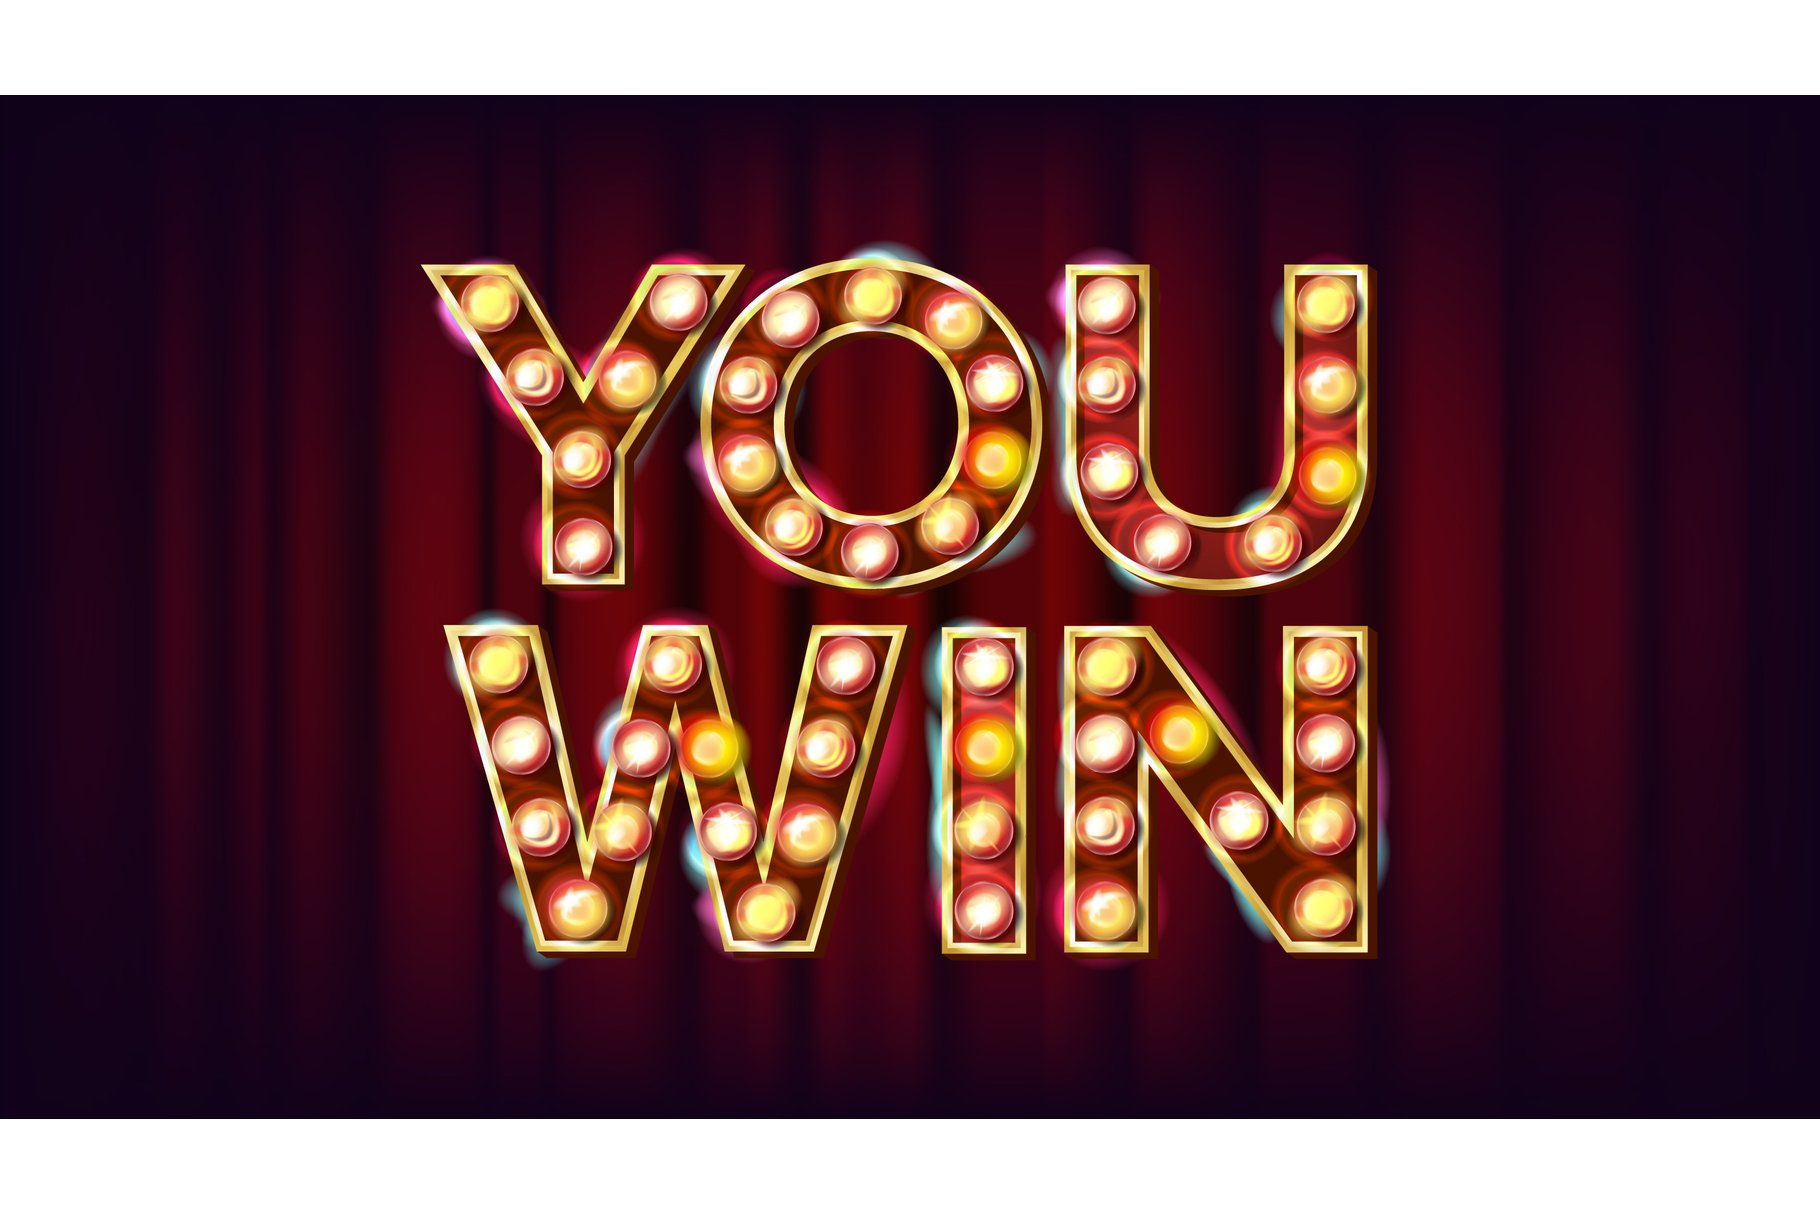 You Win Banner Vector. Casino Vintage Golden Illuminated example image 1